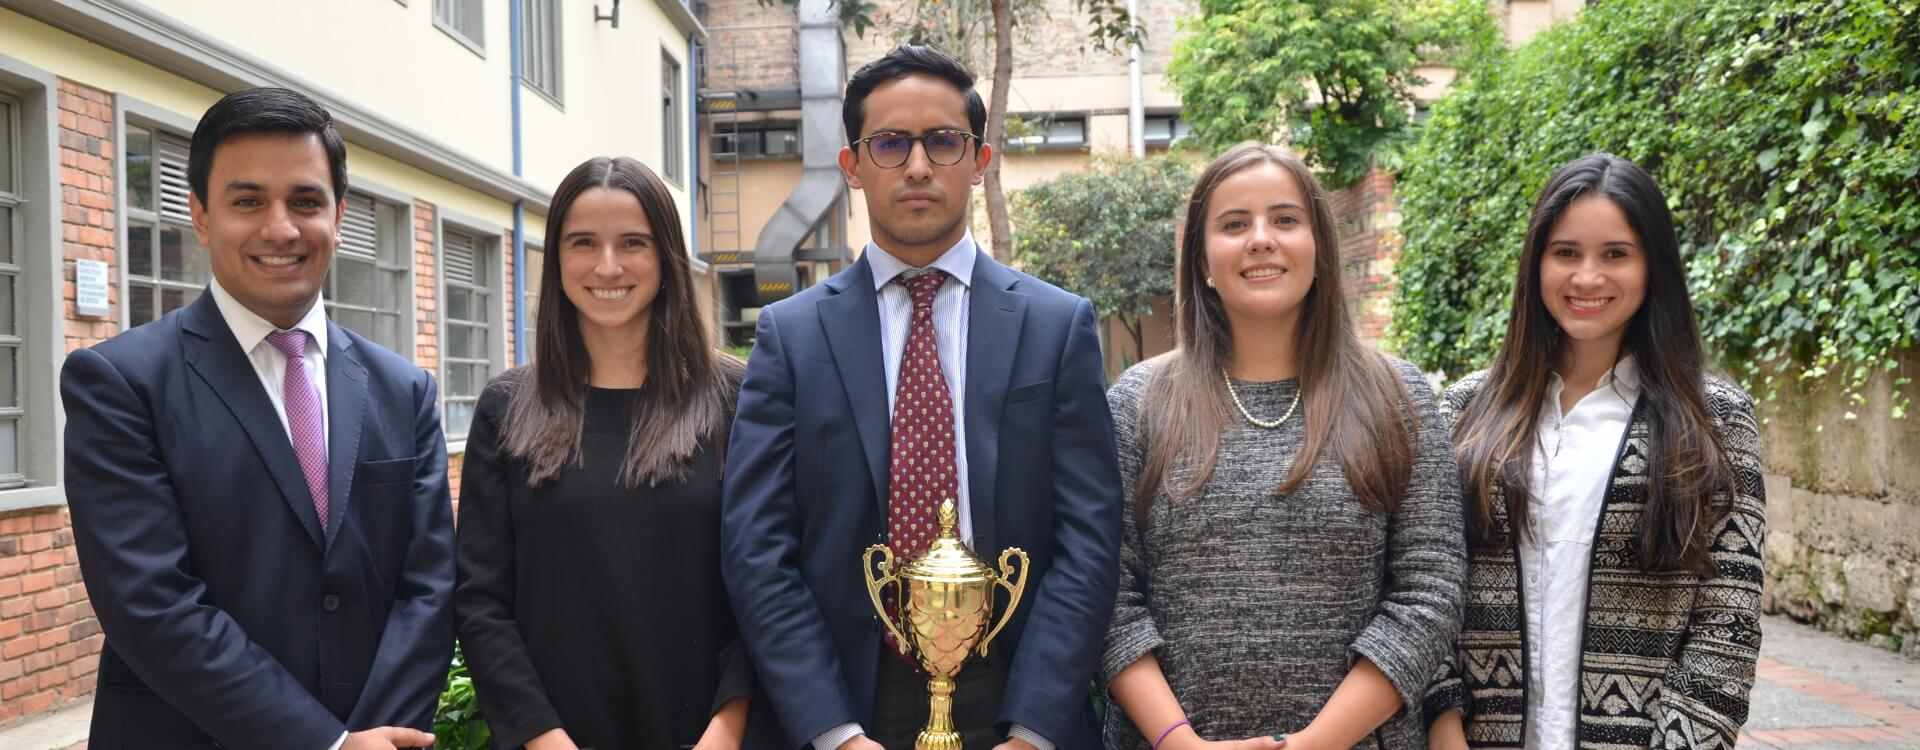 Equipo uniandino, ganador de competencia regional Elsa Moot Court Competition on WTO Law 2017